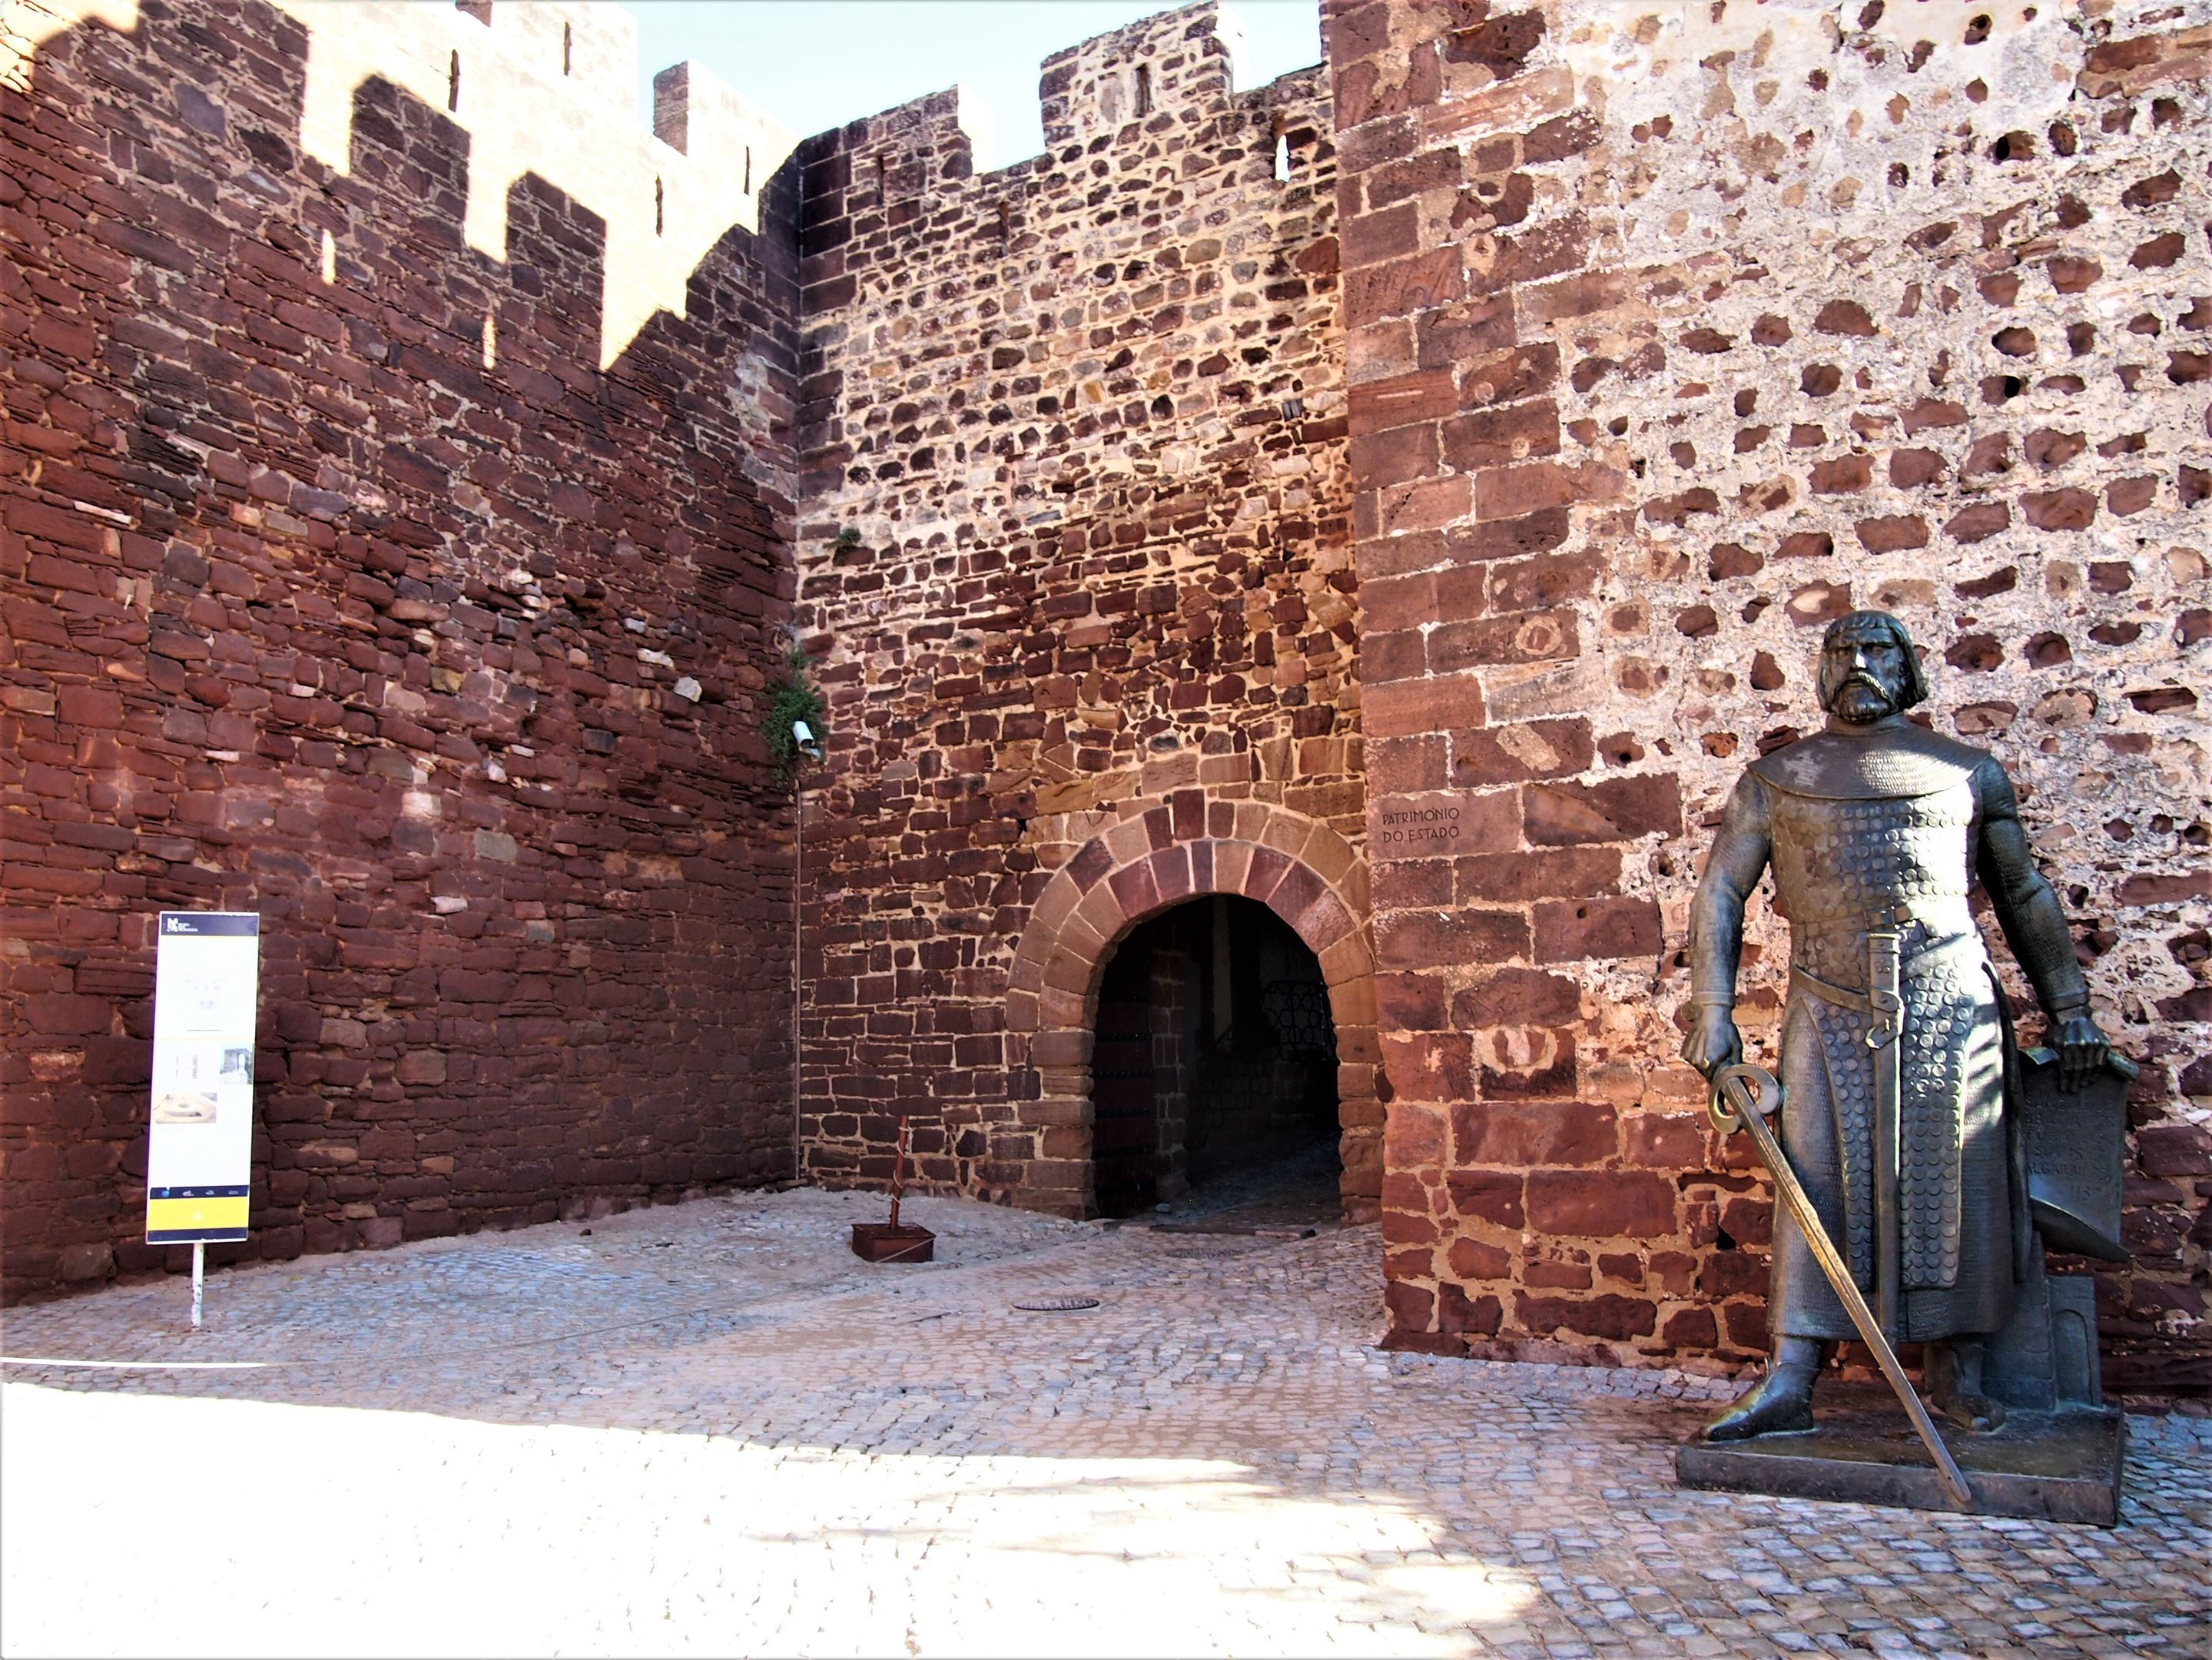 Entrance to Silves Castle, thought to date from the 8th Century/ King Sancho 1 standing proud after conquering the City from the Moors during the 12th Century